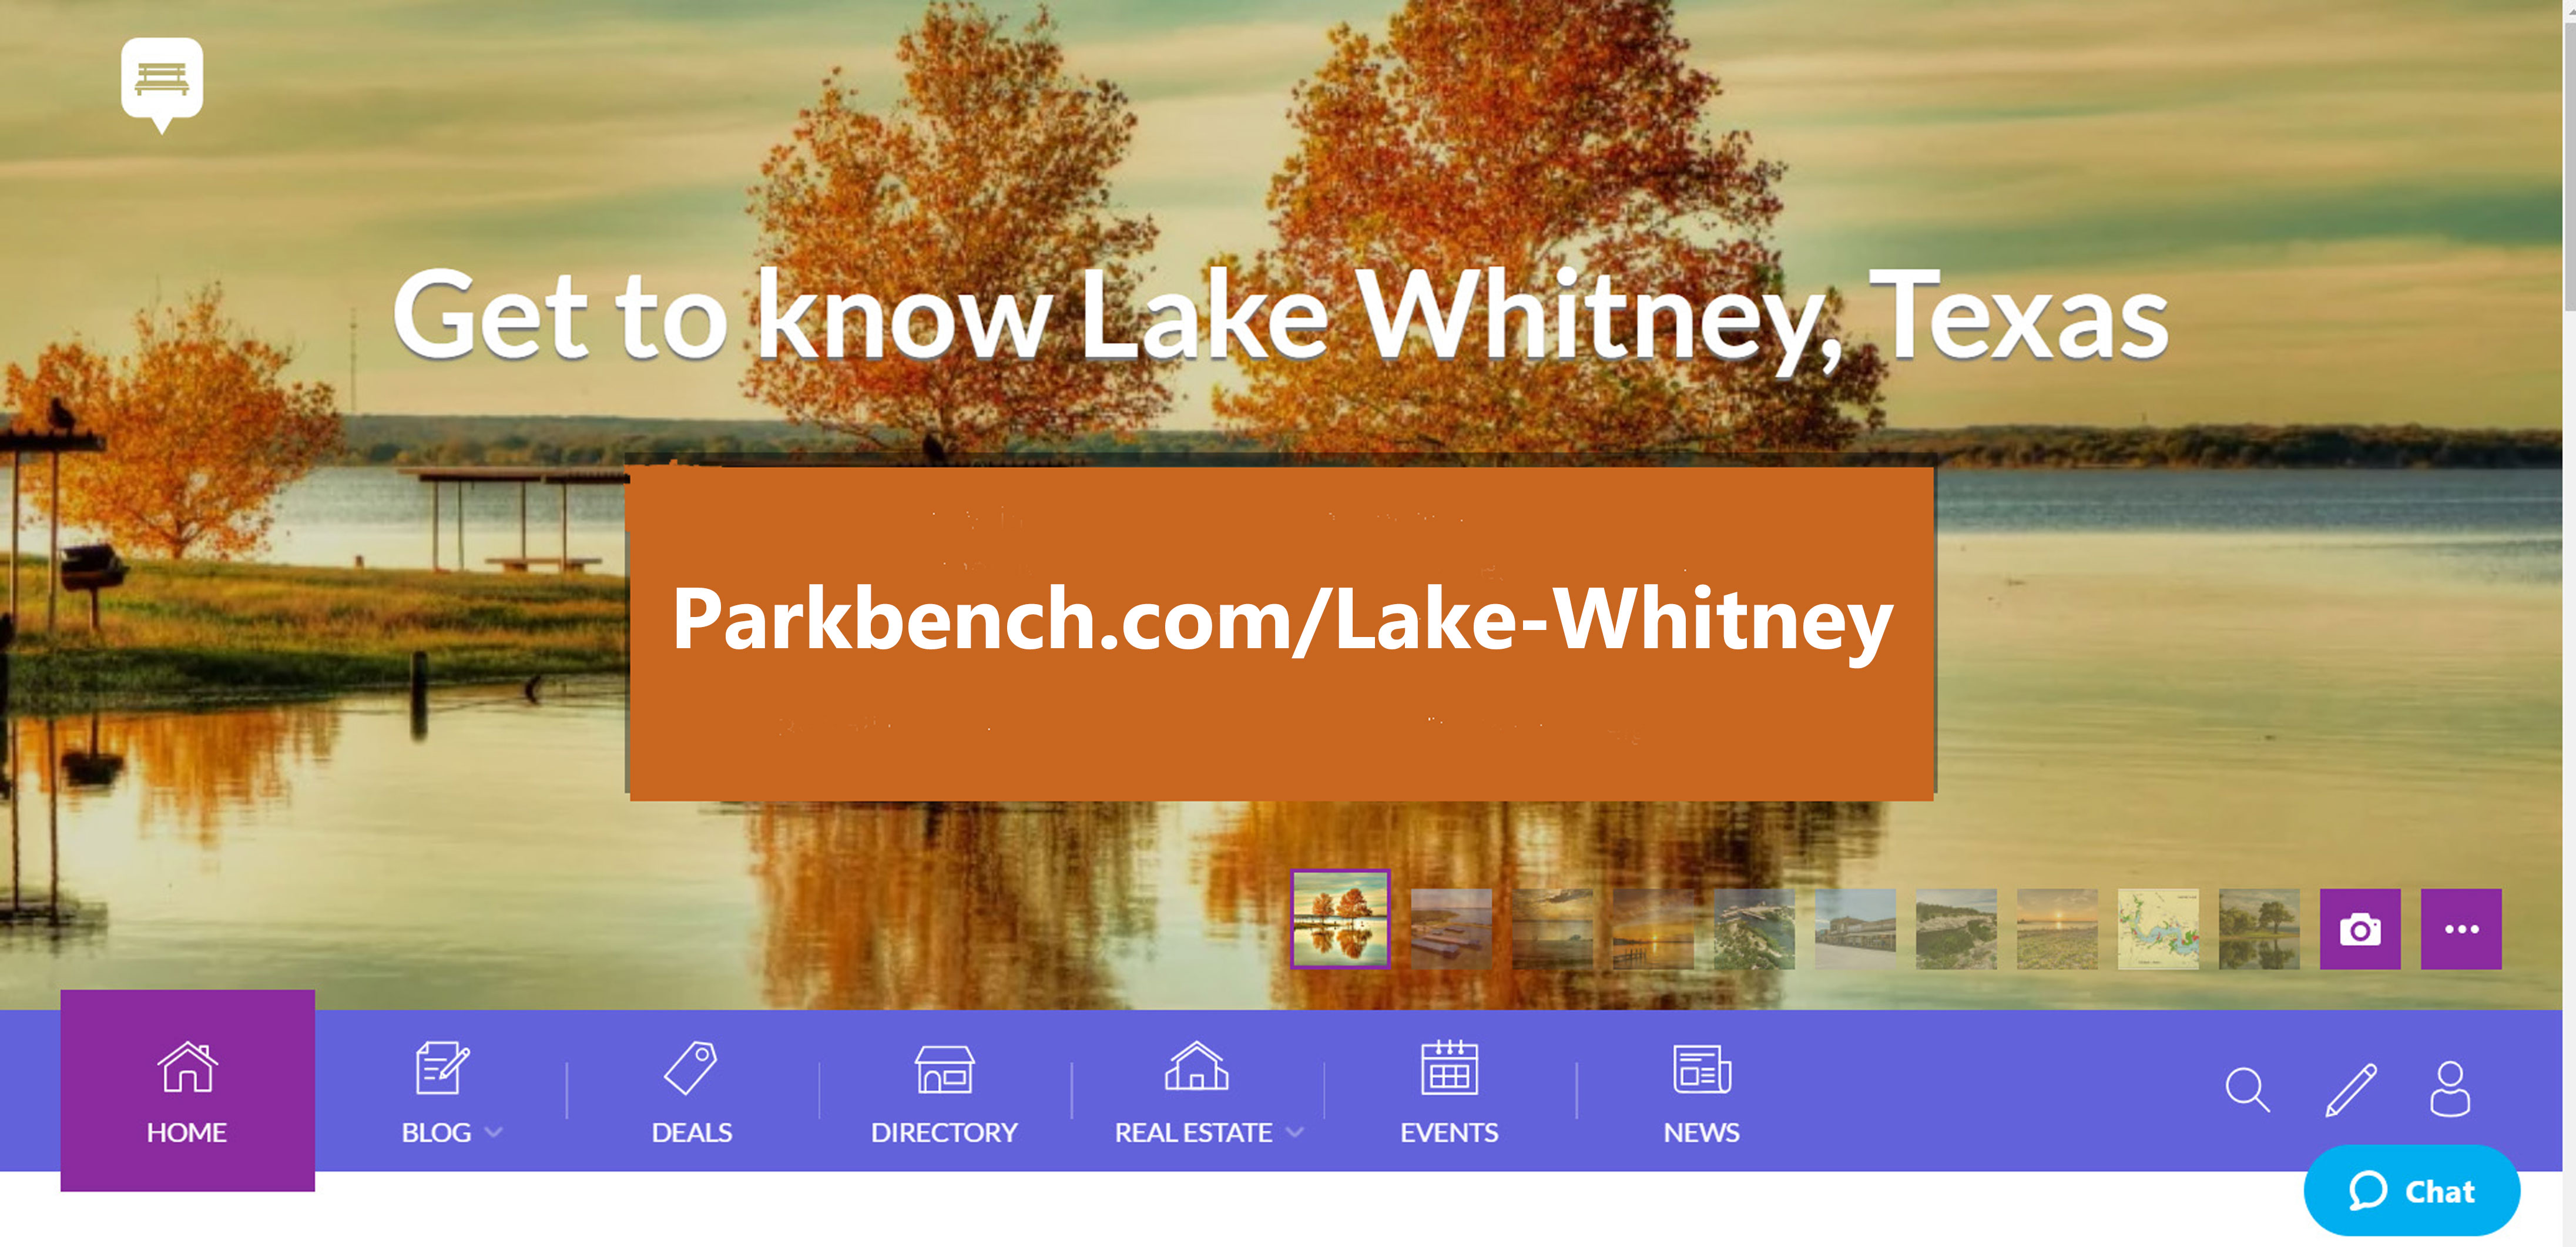 Community site for sharing events, businesses and news in Lake Whitney